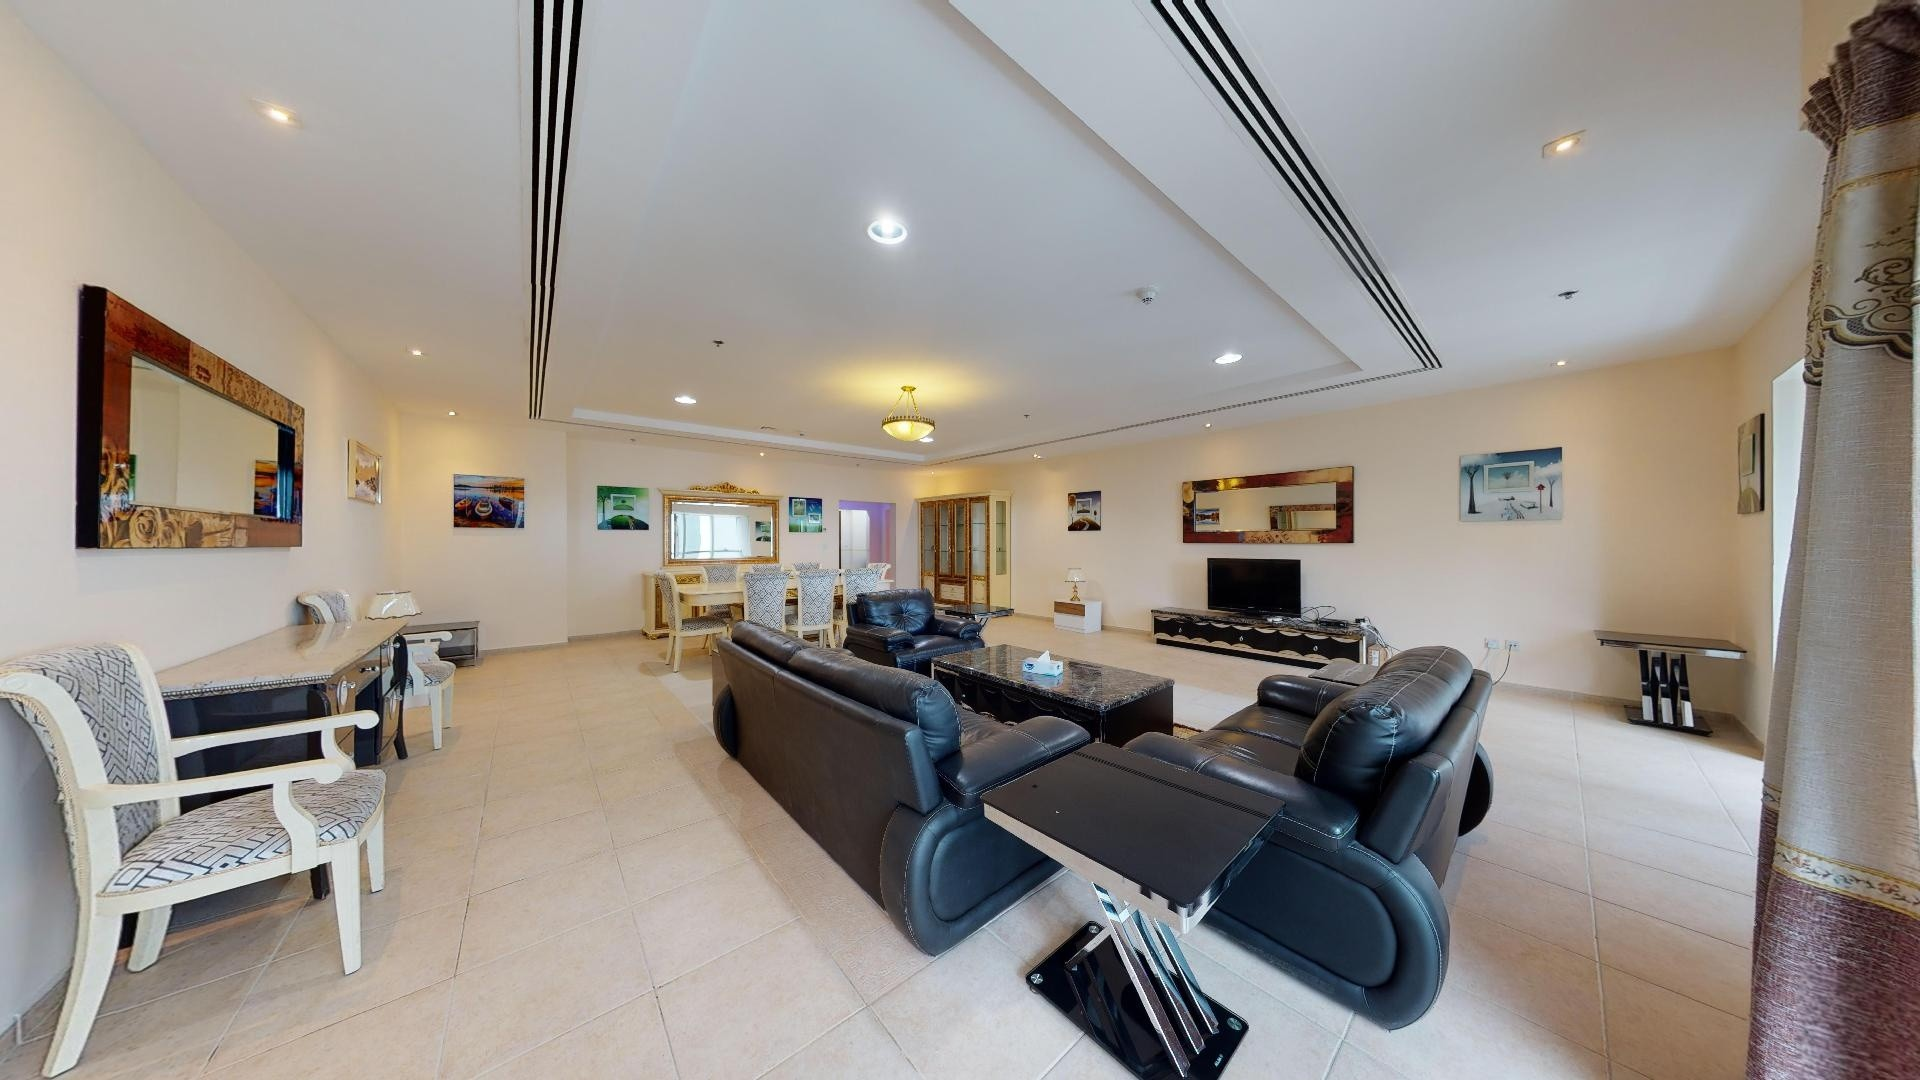 Furnished penthouse | Partial sea view | Pay rent online